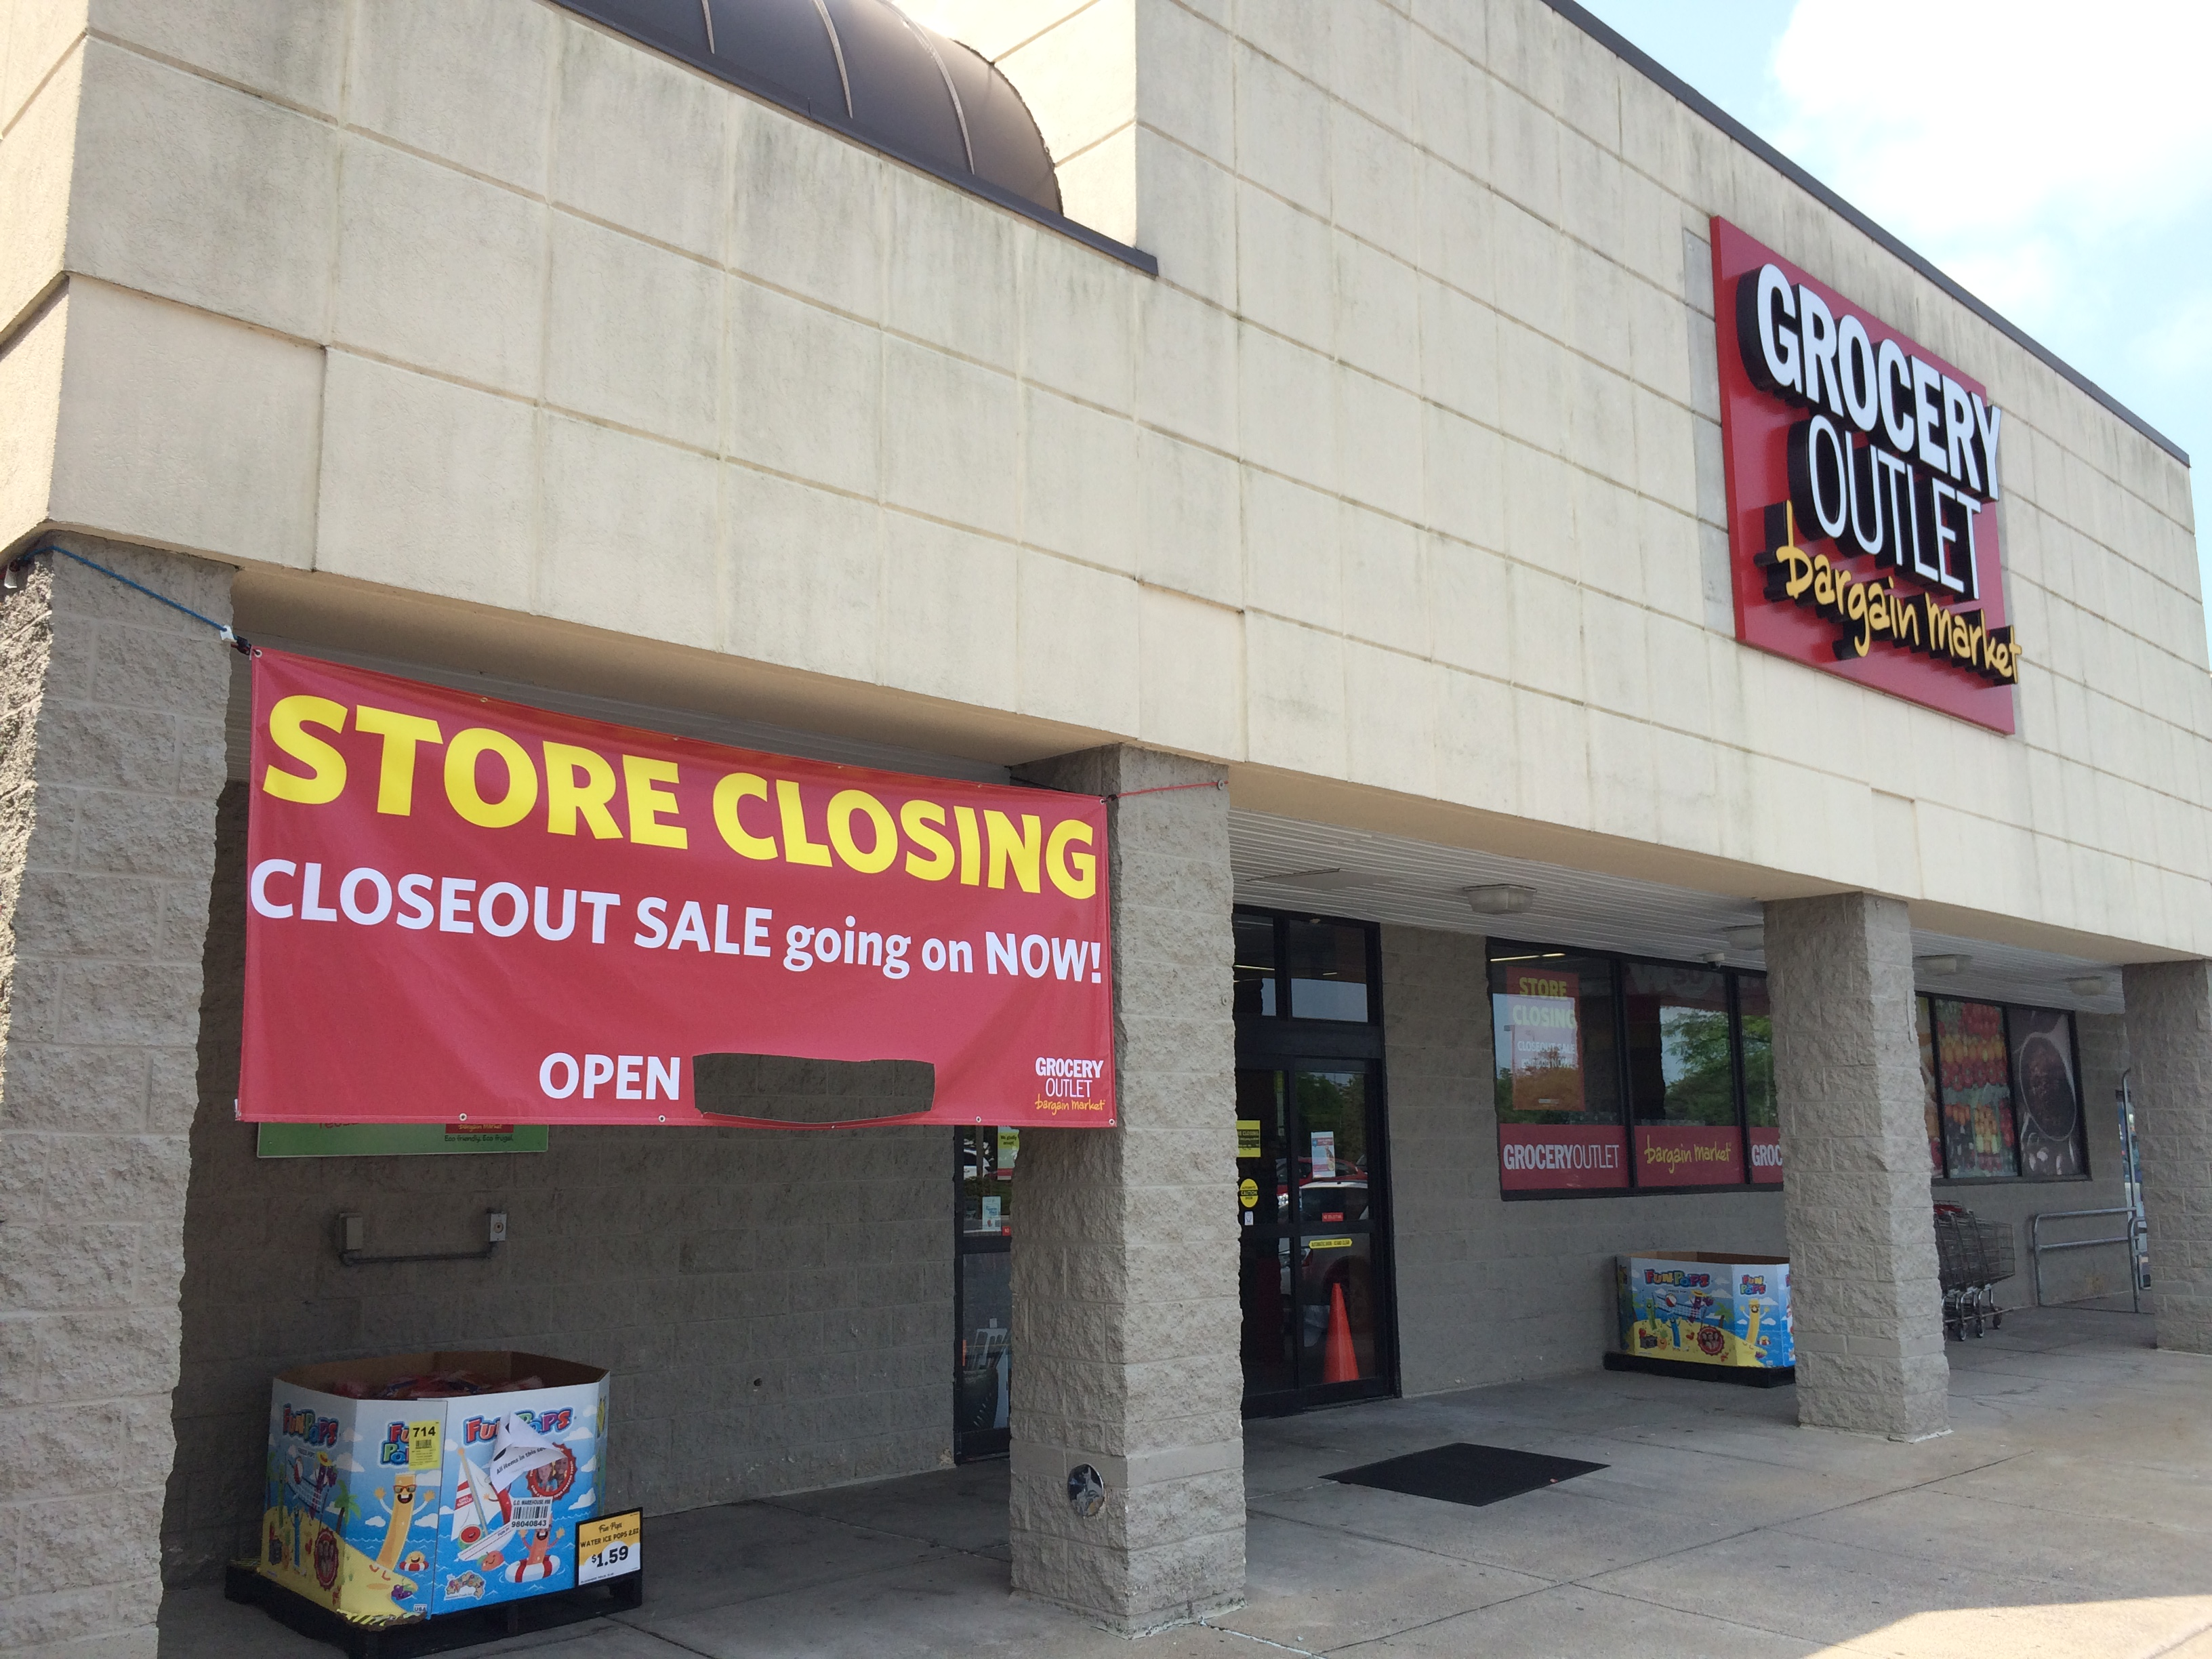 Grocery Outlet discount store in Hampden Township is closing